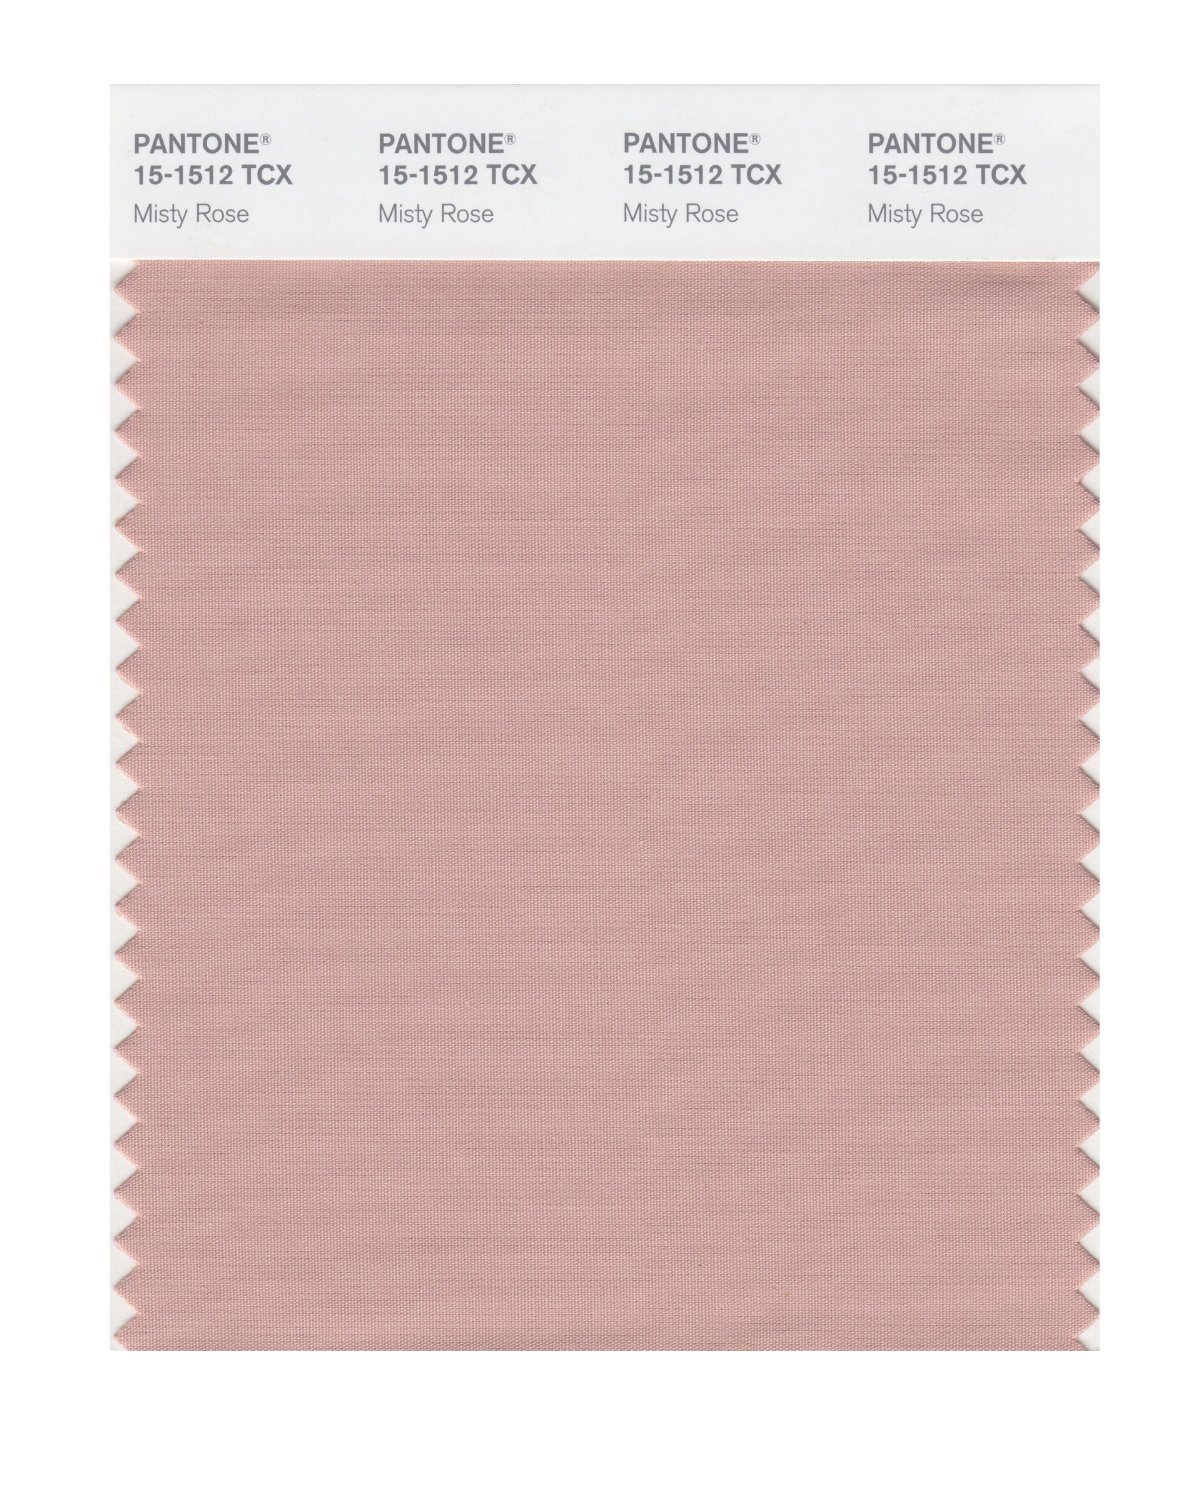 Pantone Smart Swatch 15-1512 Misty Rose